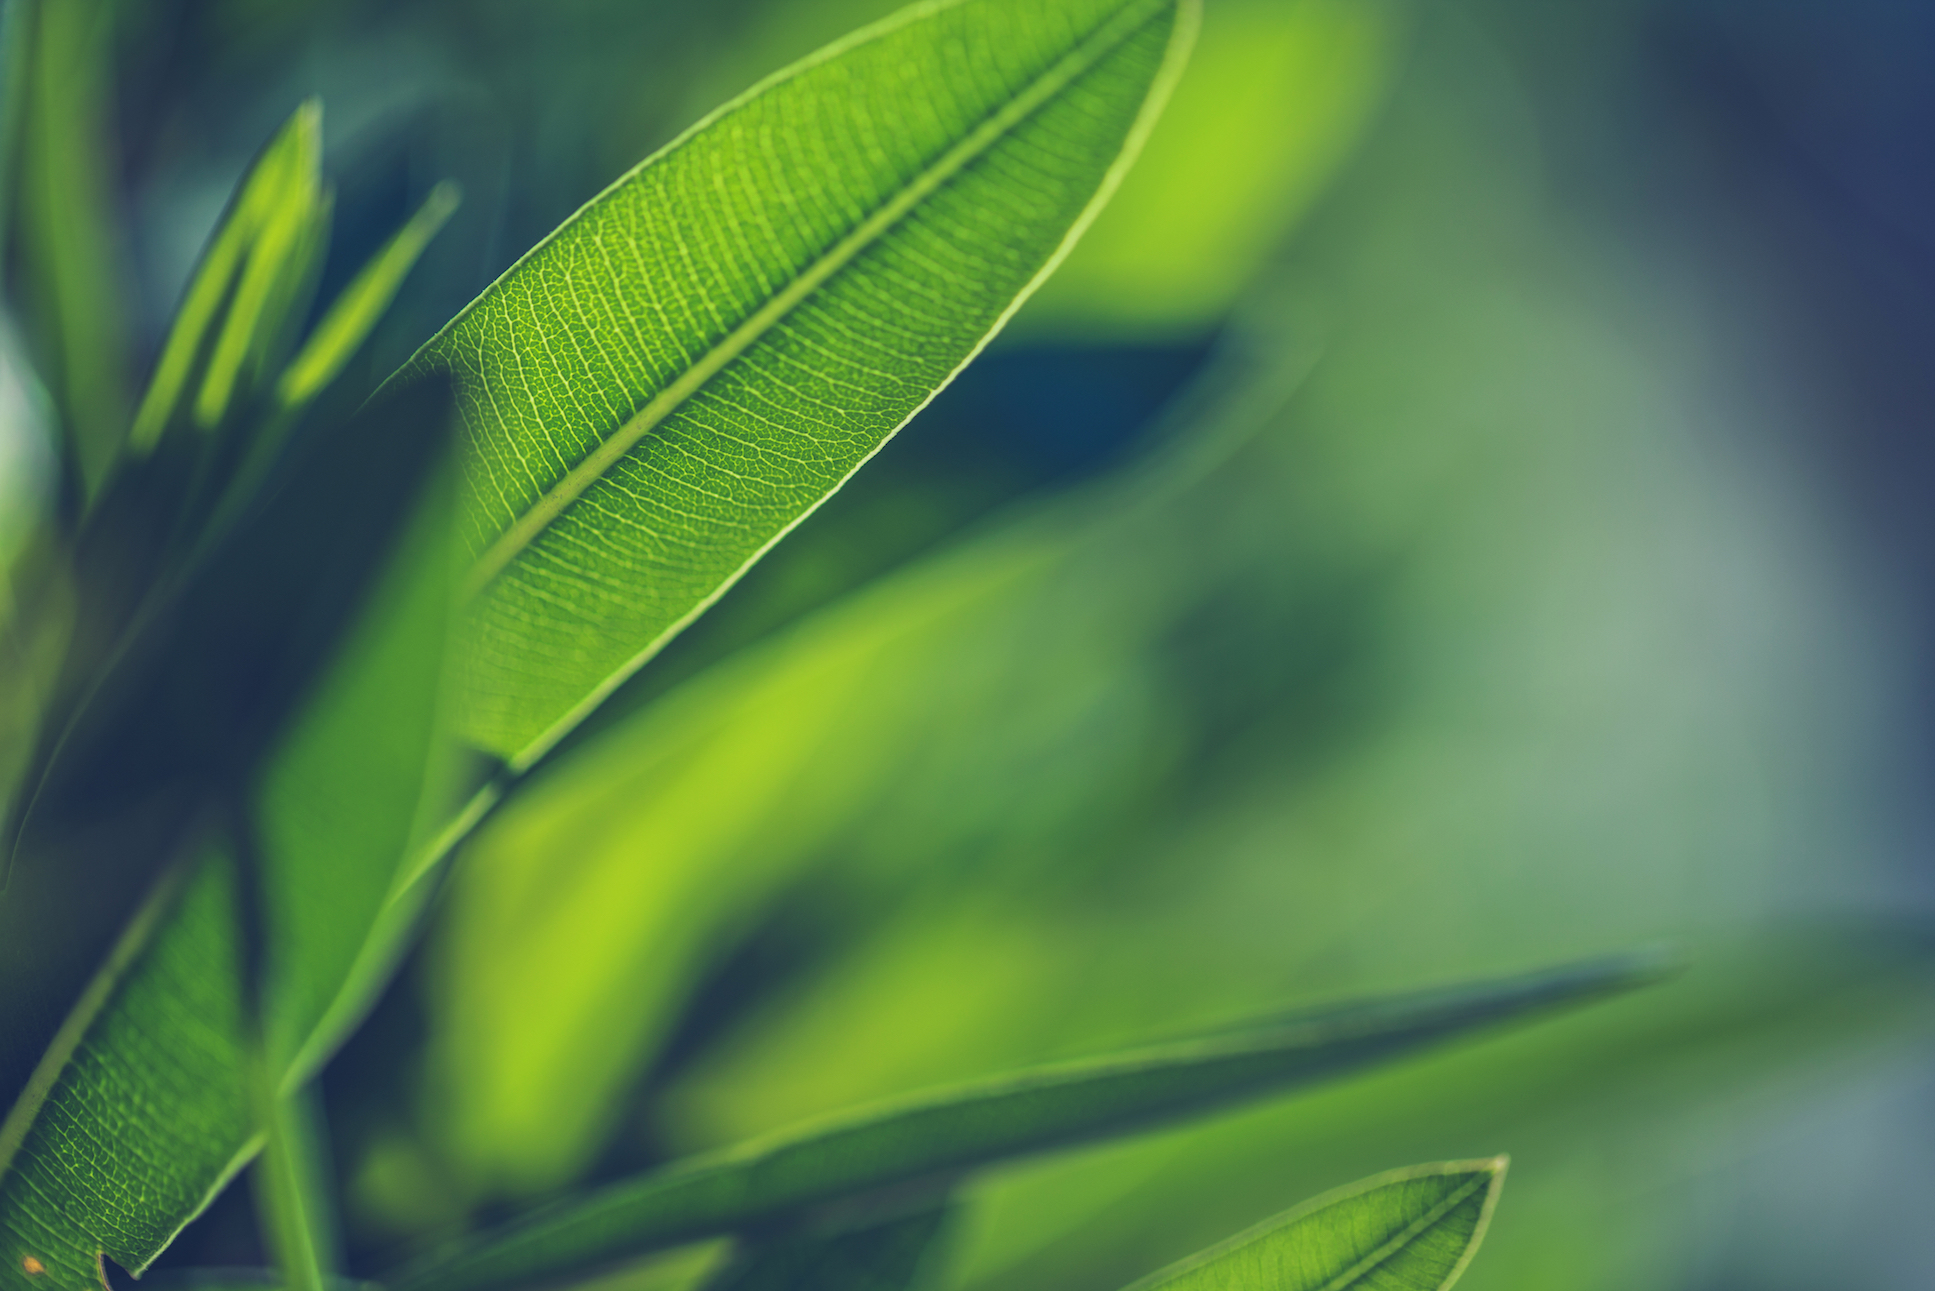 Scientists have found a way to remodel plant waste into carbon fiber strong enough to be used to build airplane and automobile parts.